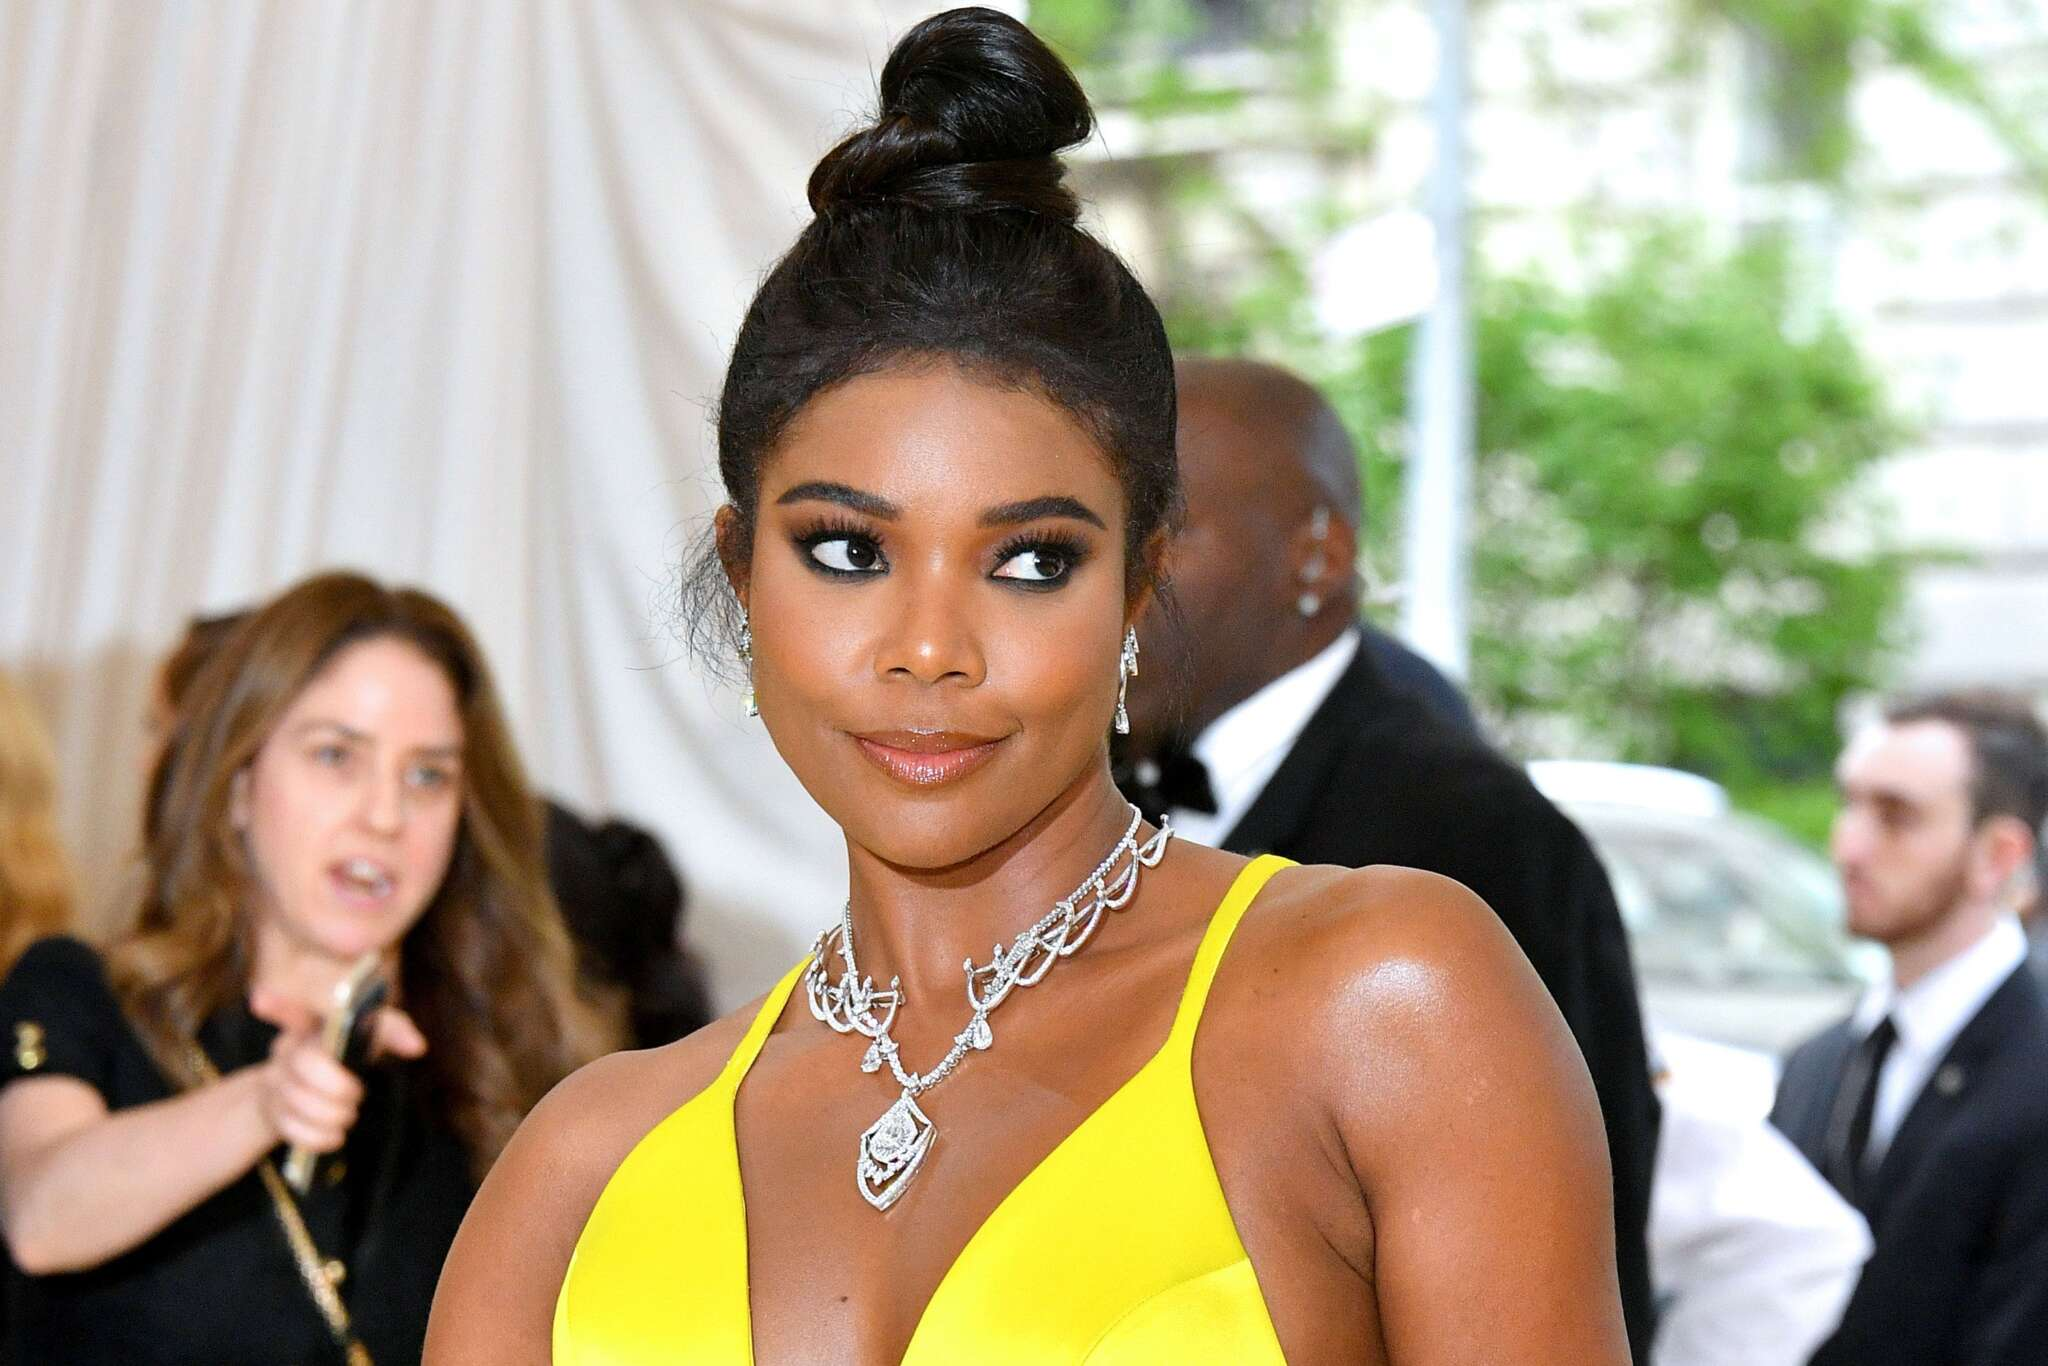 gabrielle-union-shares-new-video-featuring-kaavia-james-and-makes-fans-day